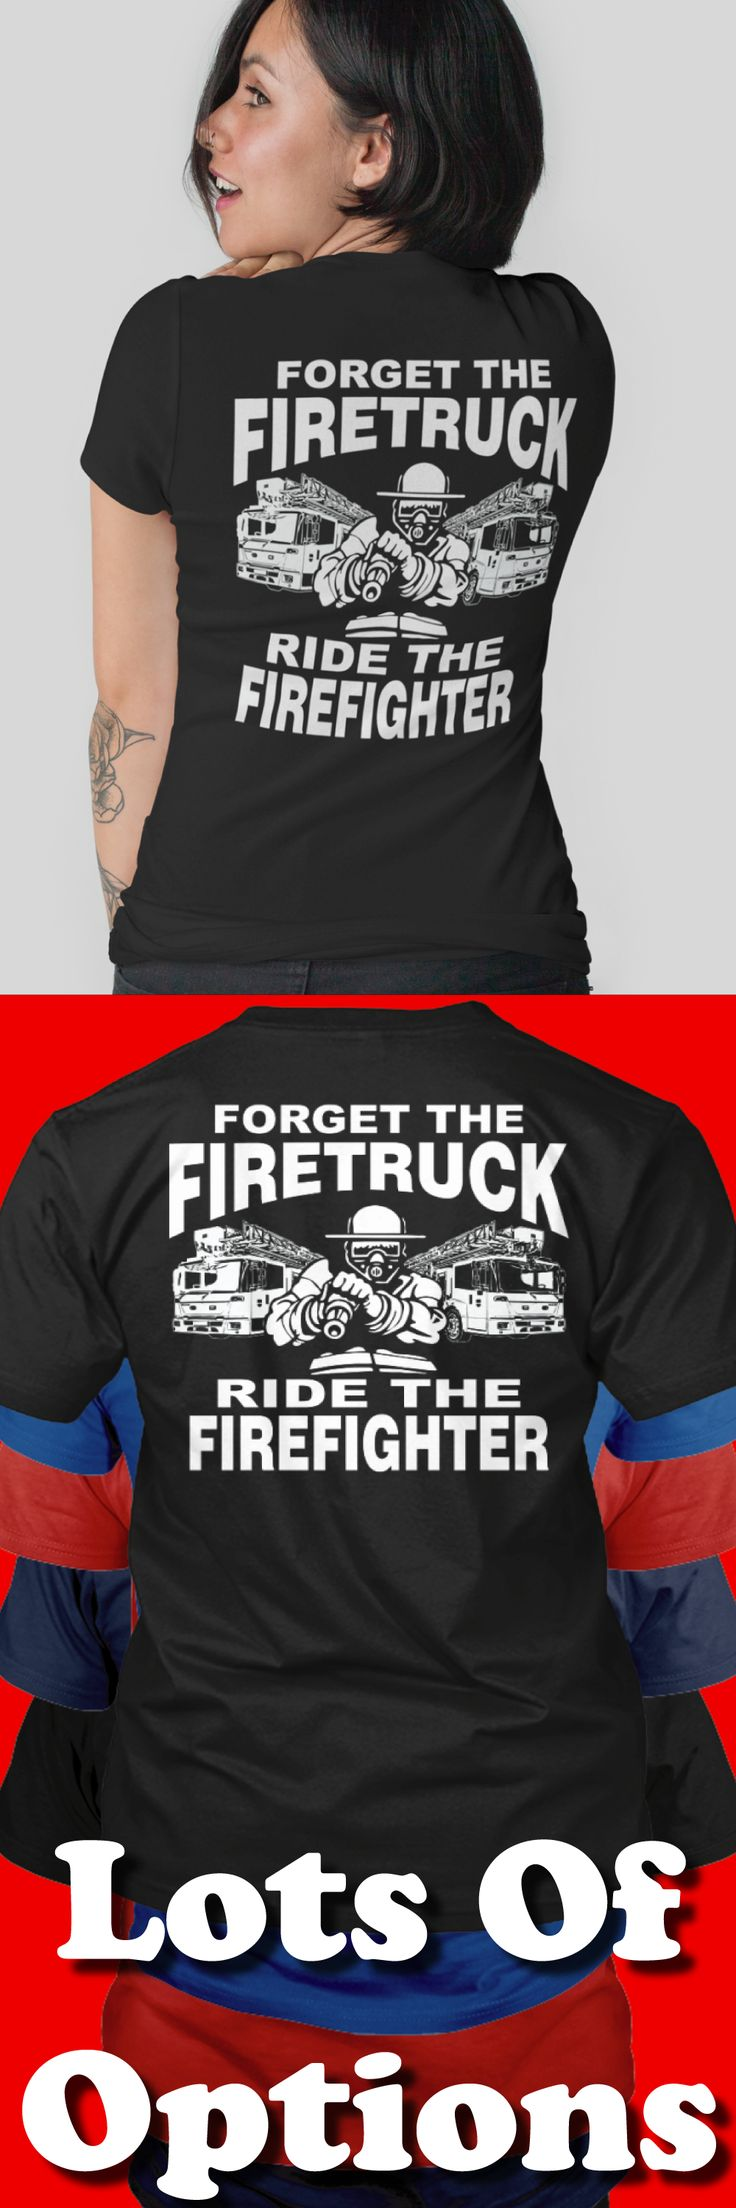 17 best ideas about firefighter shirts volunteer firefighter shirts are you a firefighter do you fight fire great firefighters gift